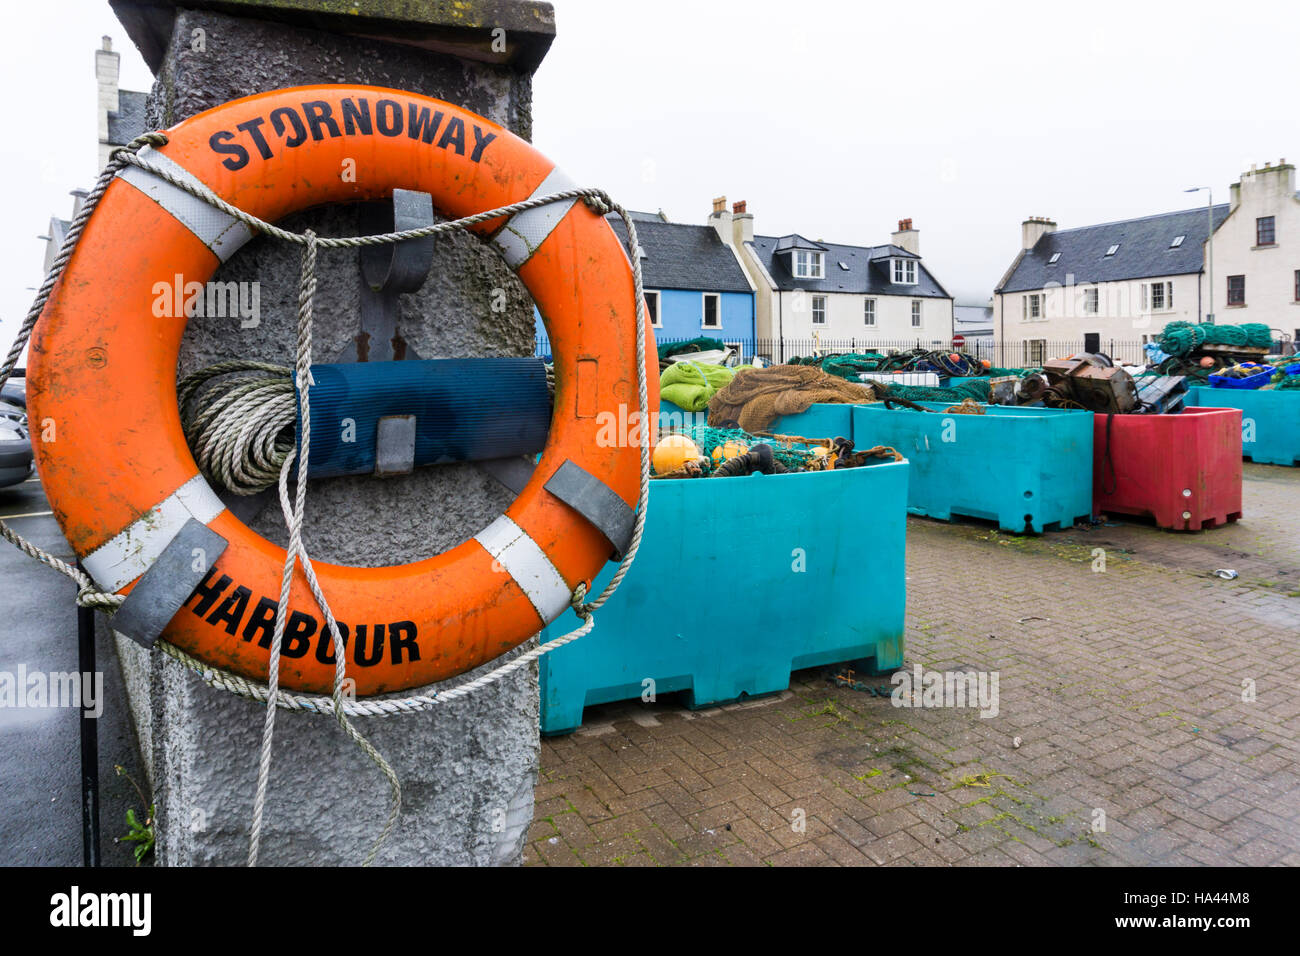 Stornoway Harbour on the Isle of Lewis in the Outer Hebrides. - Stock Image